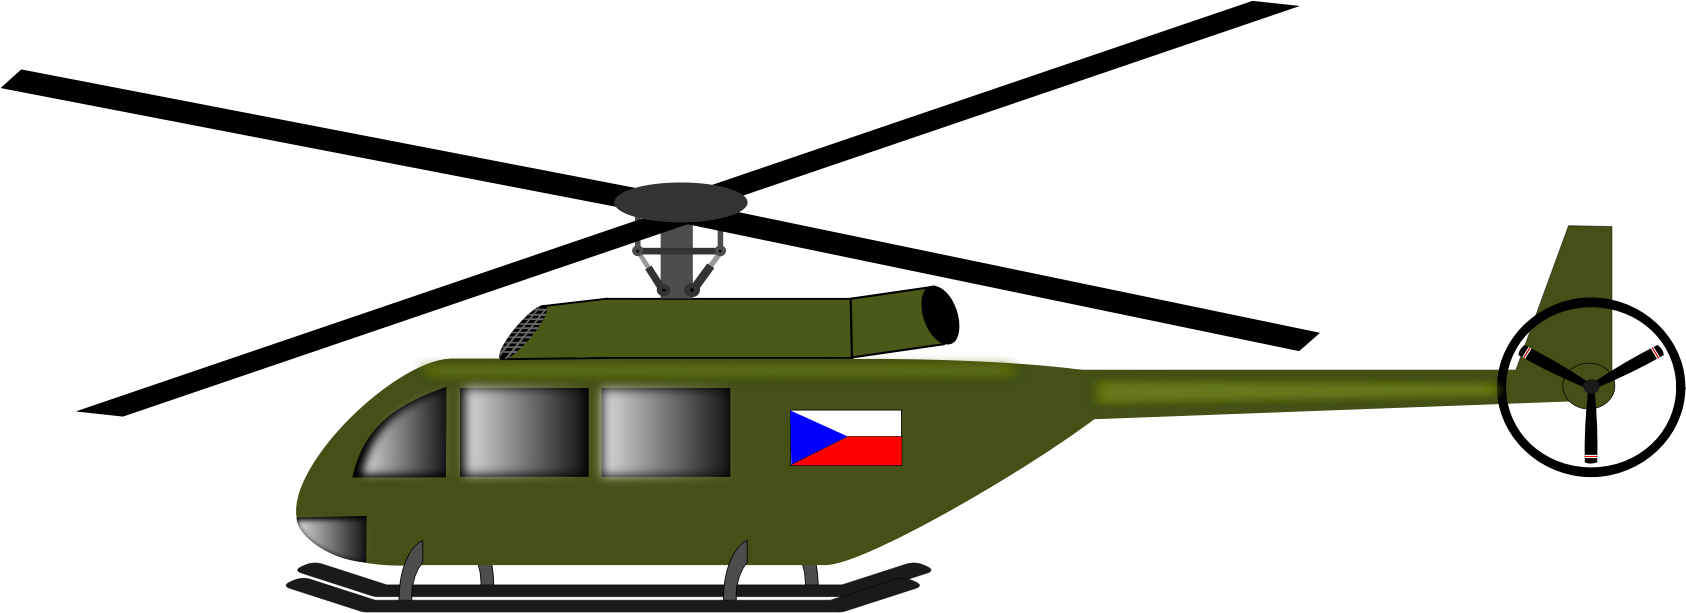 1686x613 Helicopter Clipart Images Collection